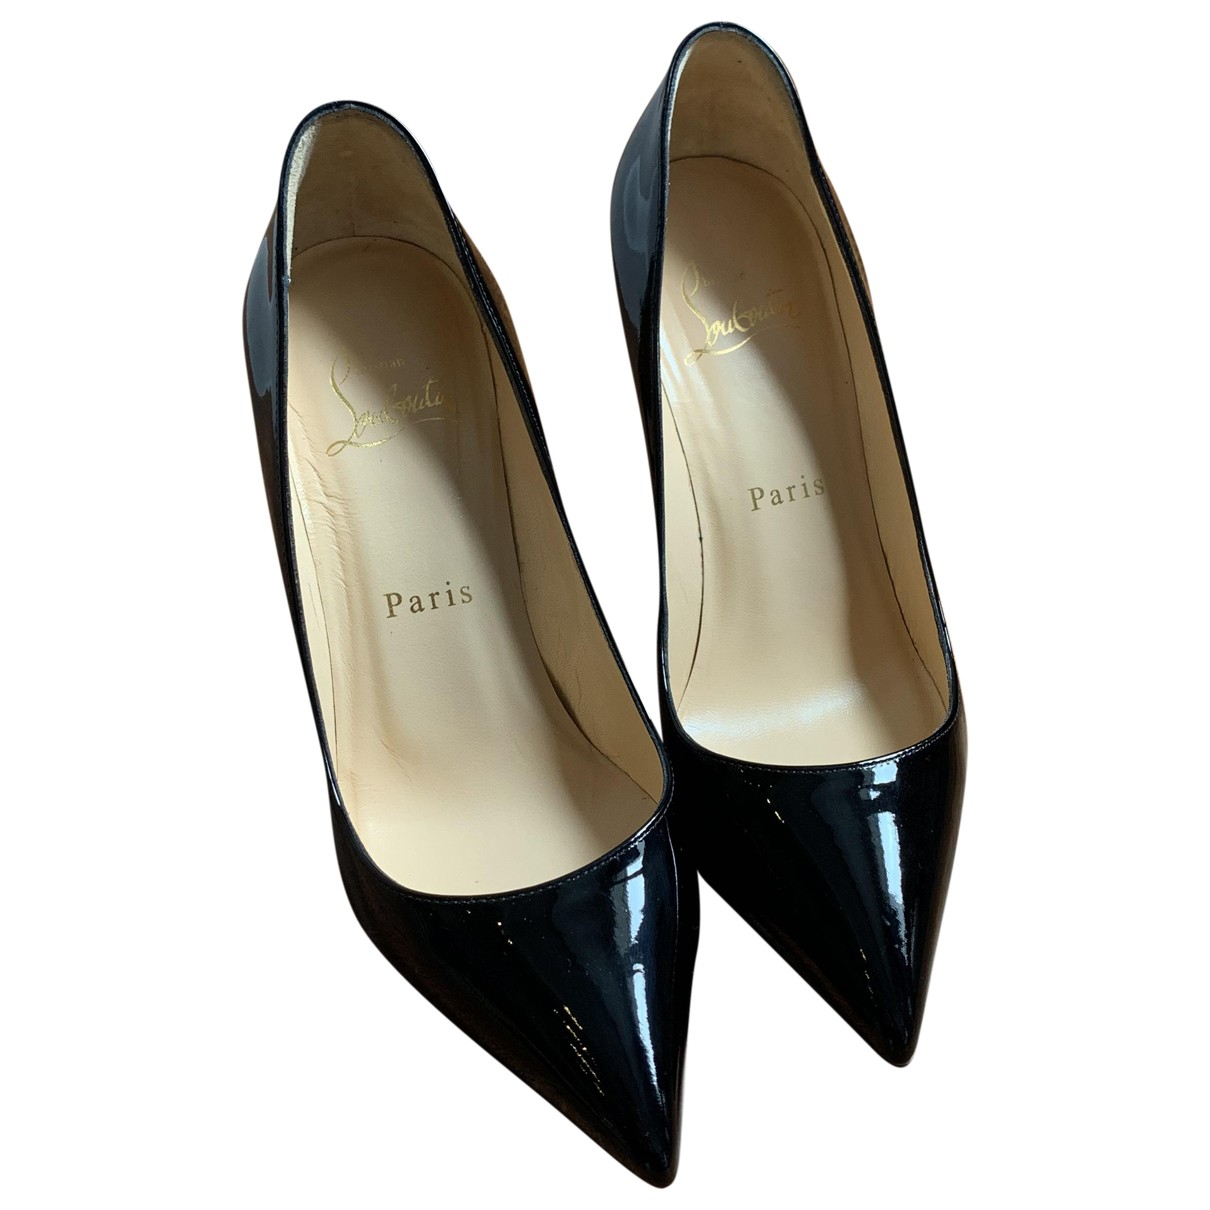 Christian Louboutin Pigalle Black Patent leather Heels for Women 35 EU